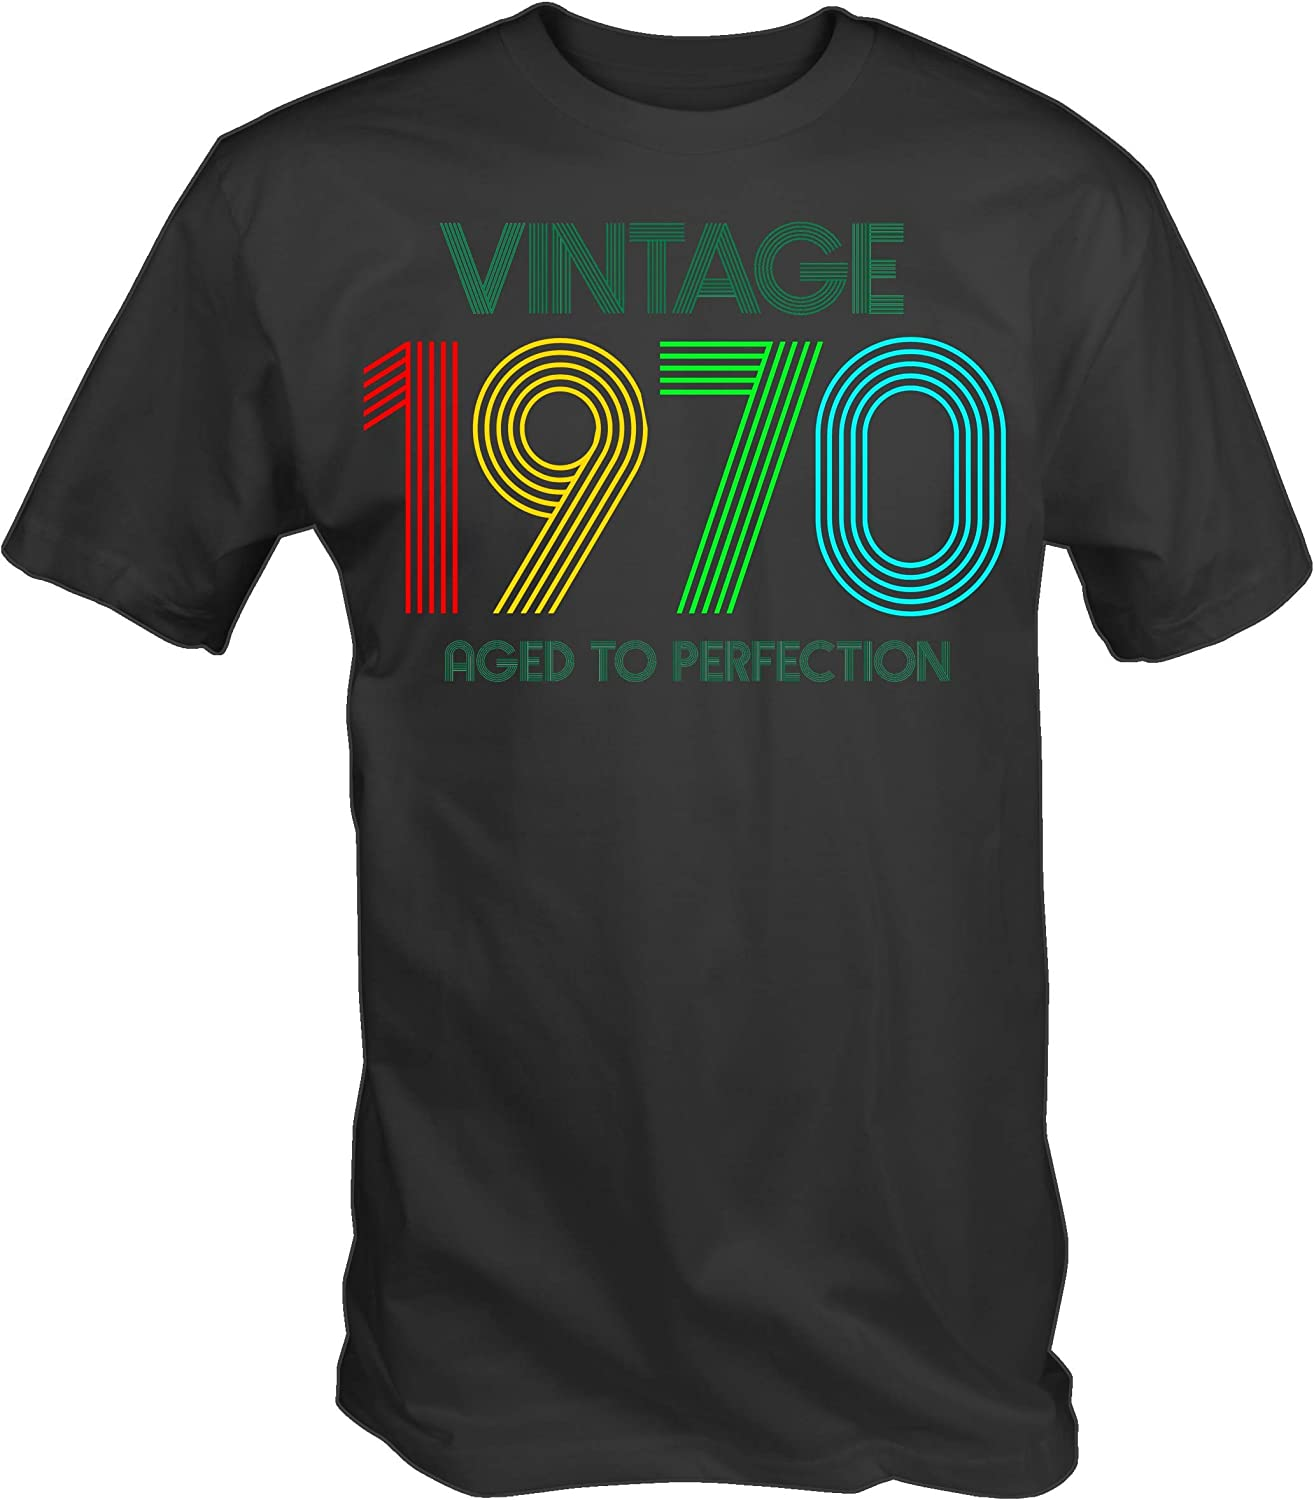 6TN Mens Vintage 1970 Aged to Perfection T-Shirt